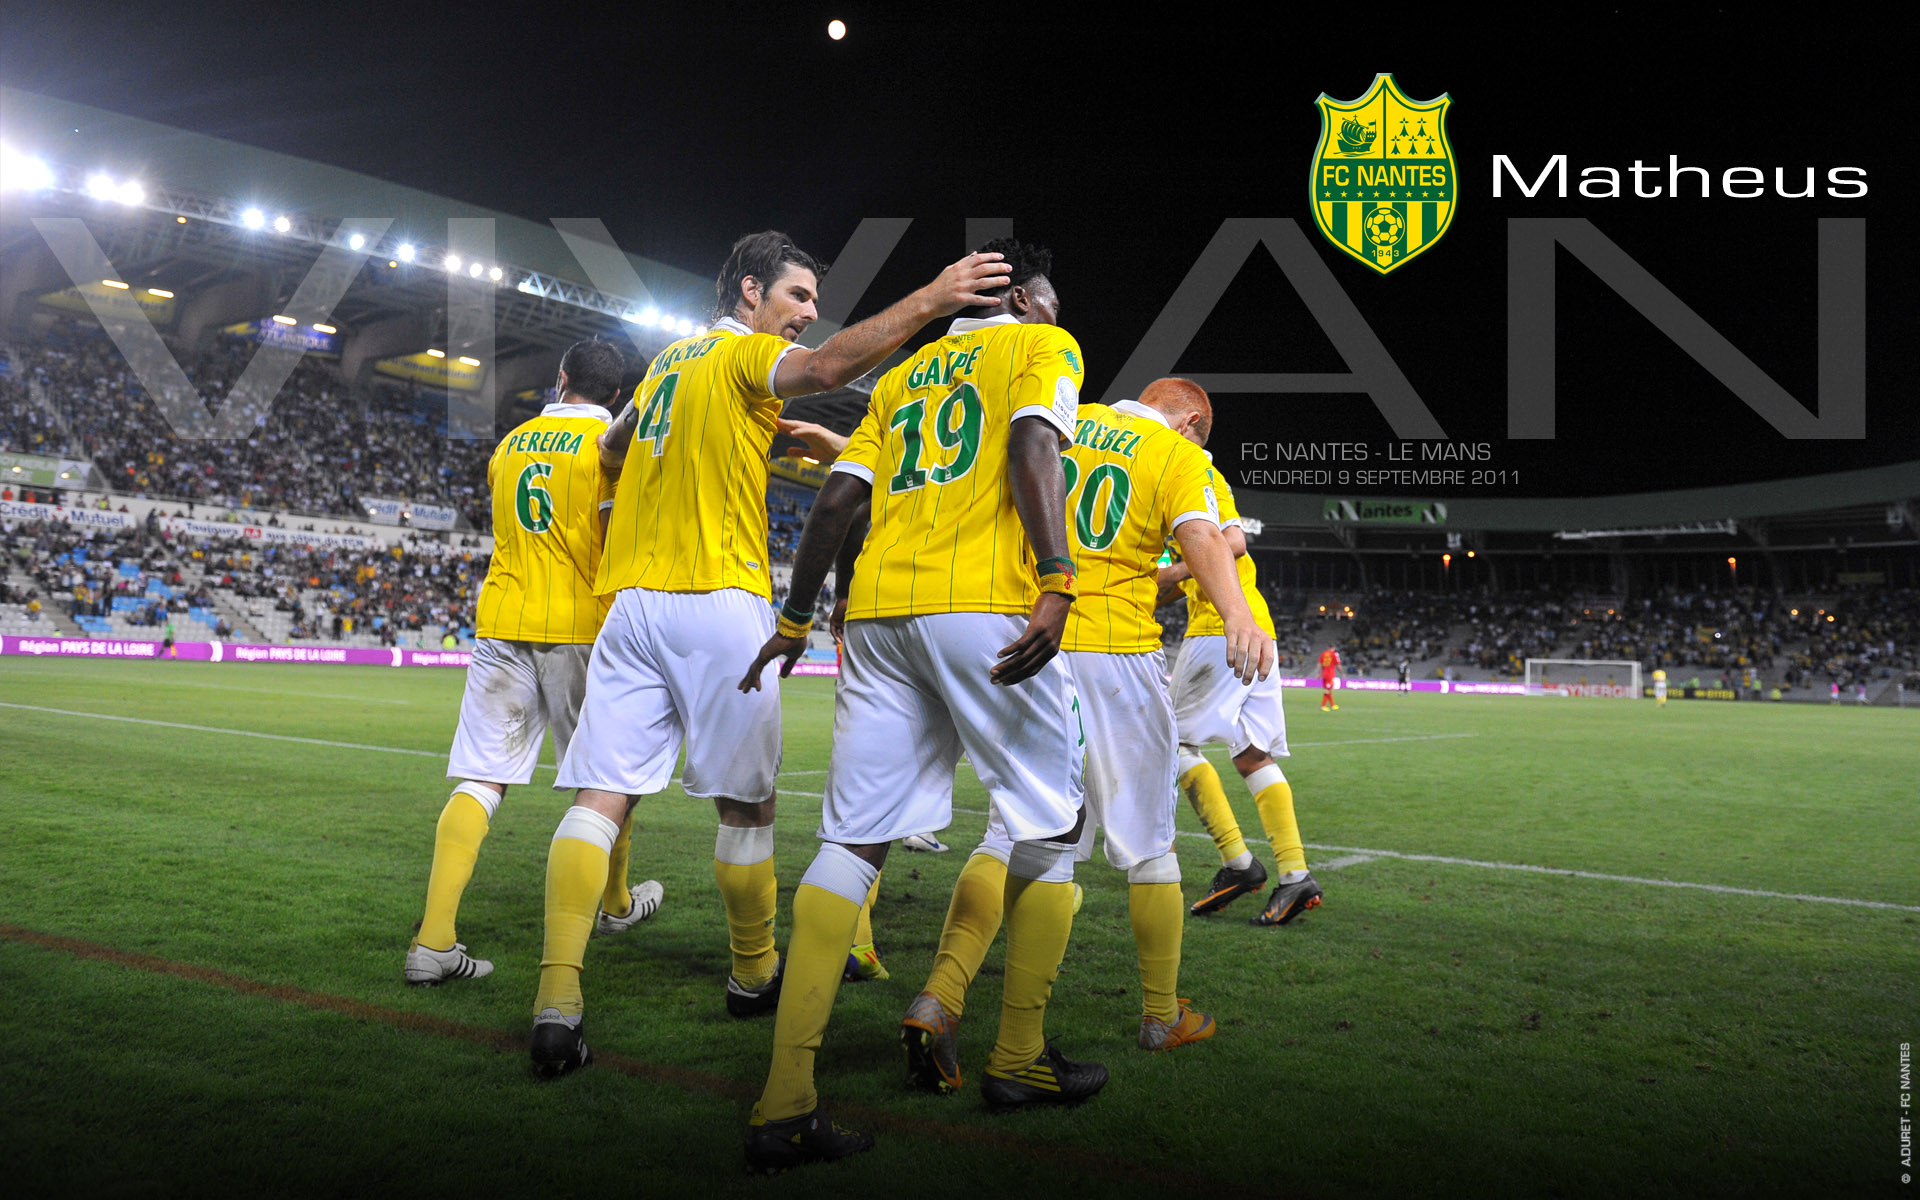 fc nantes site officiel du football club de nantes. Black Bedroom Furniture Sets. Home Design Ideas